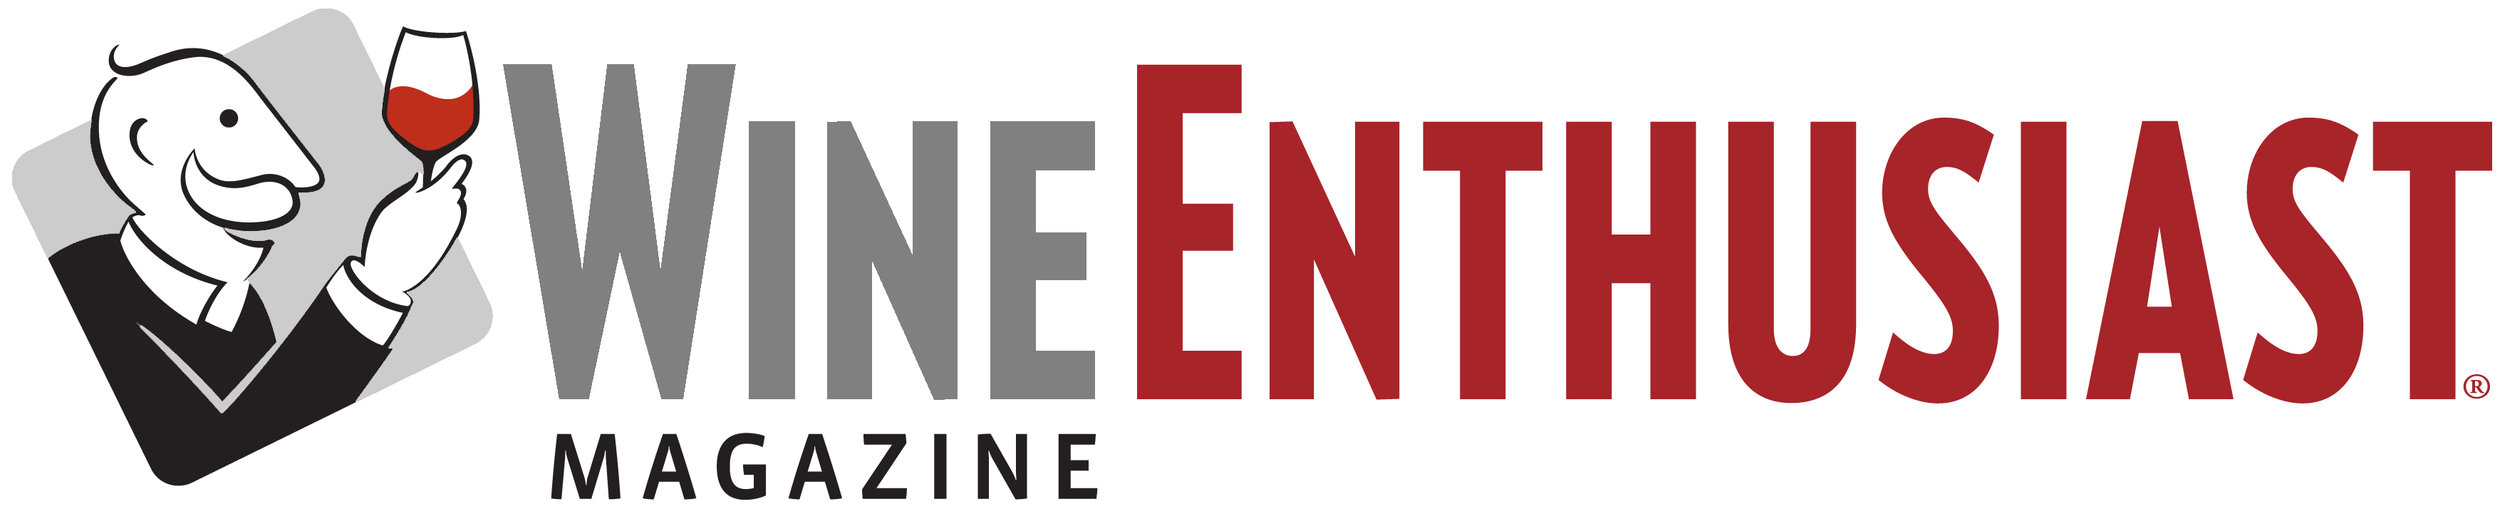 Wine Enthusiast Magazine Logo -- 3600x900.jpg